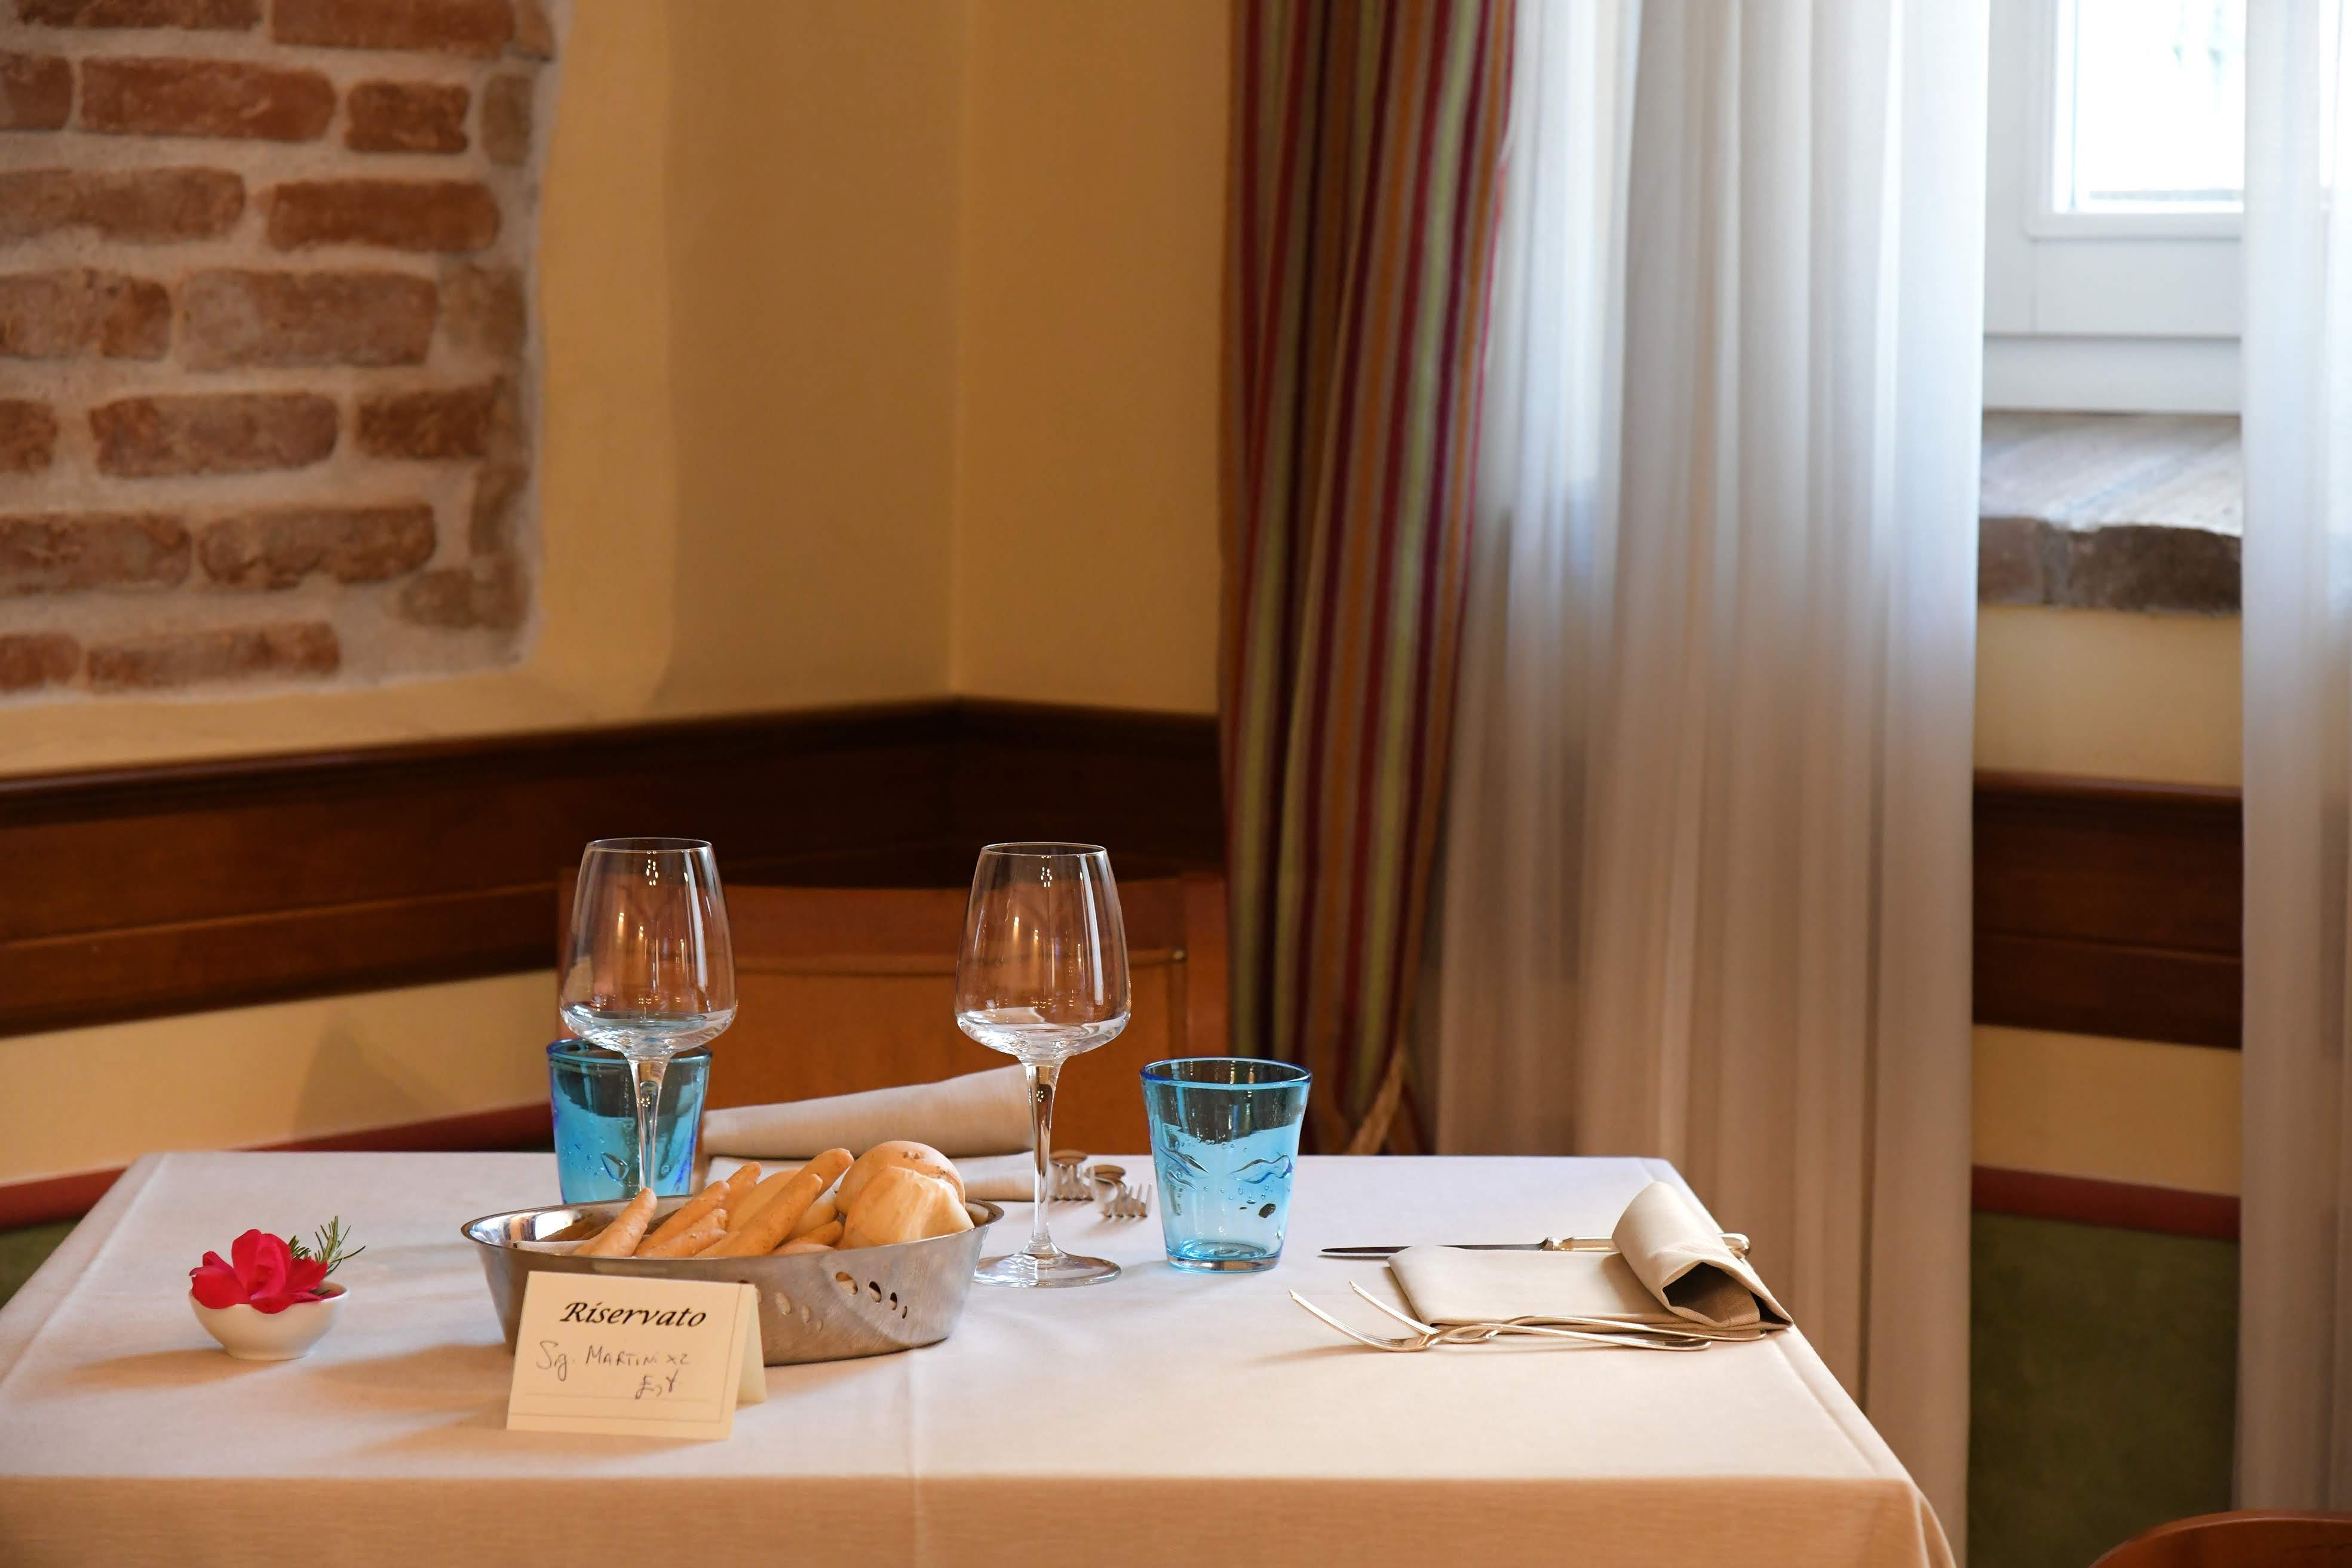 Clear Footed Glasses and Bread in Tray on Table Inside Room